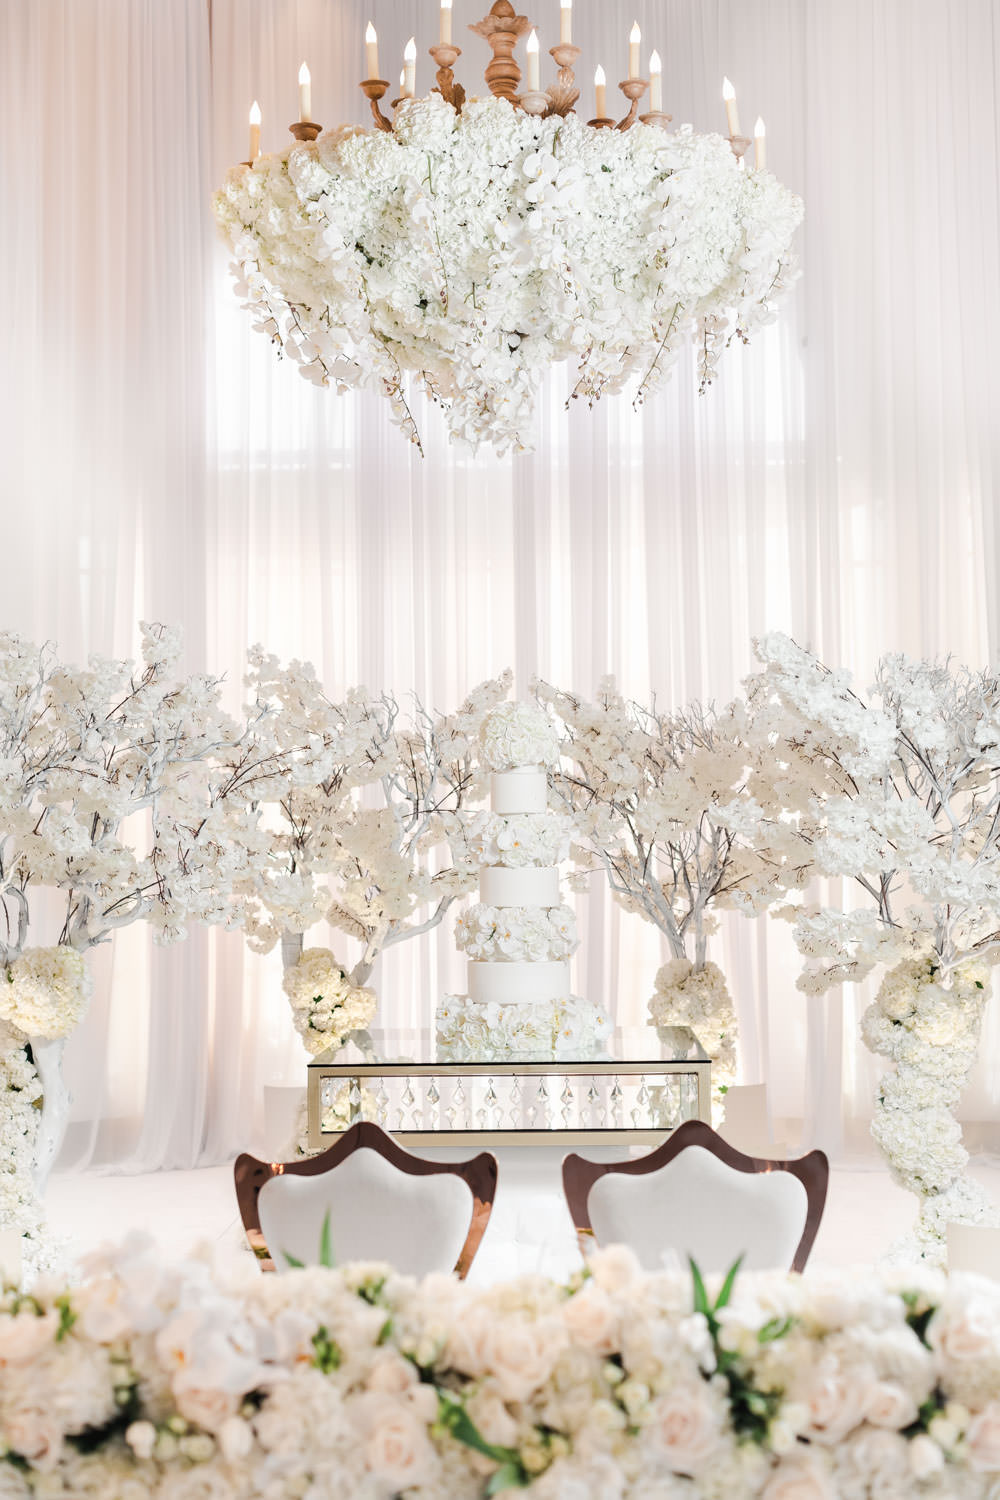 White reception seven tier cake alternating cake and flowers with white draping and carpet ceremony Pelican Hill Wedding - Cavin Elizabeth Photography